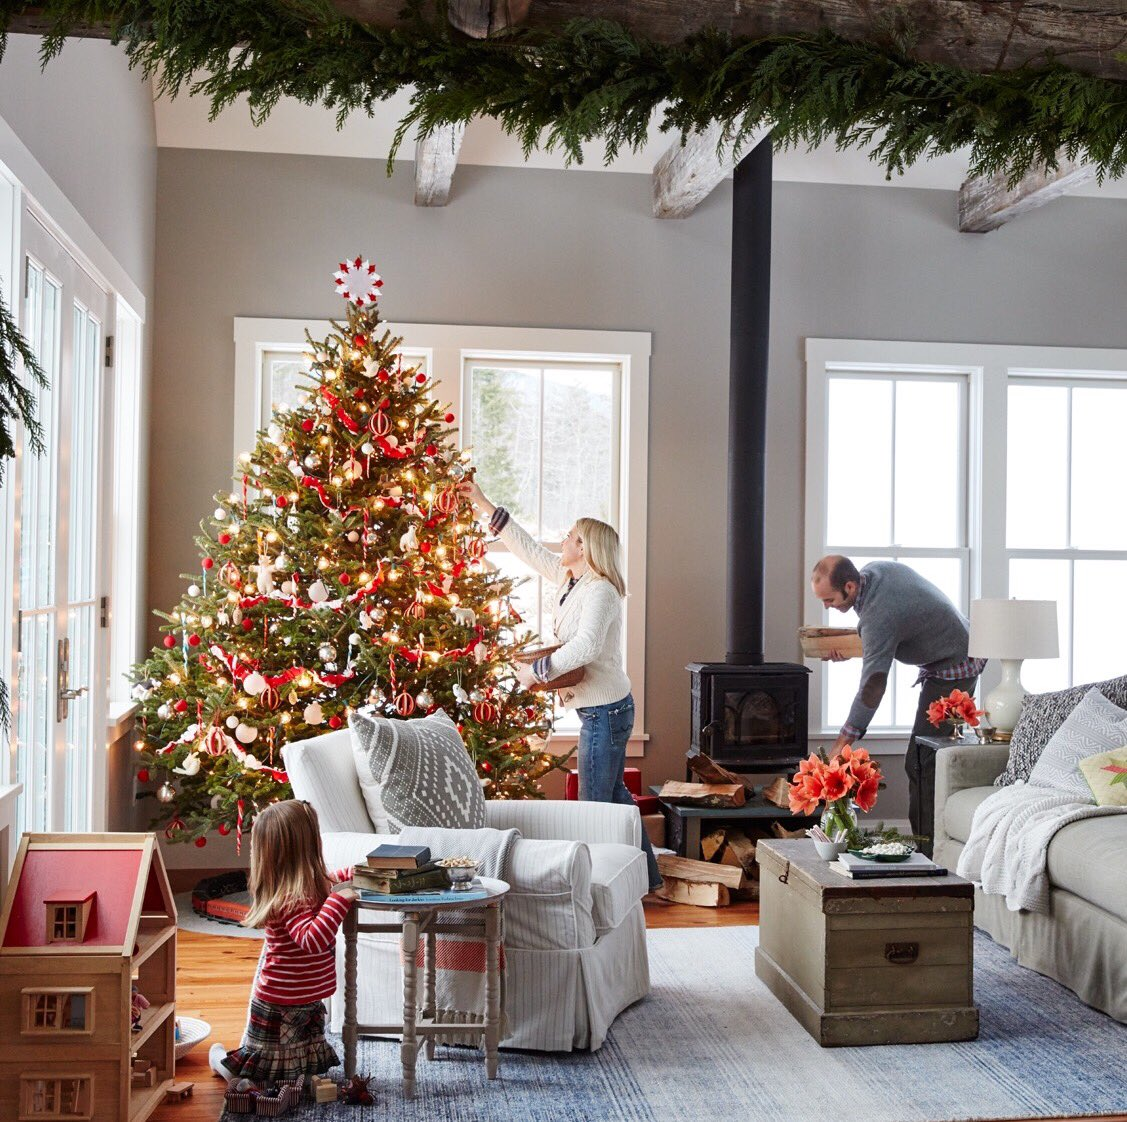 Stylish And Cozy Christmas Living Room Decor Ideas Private